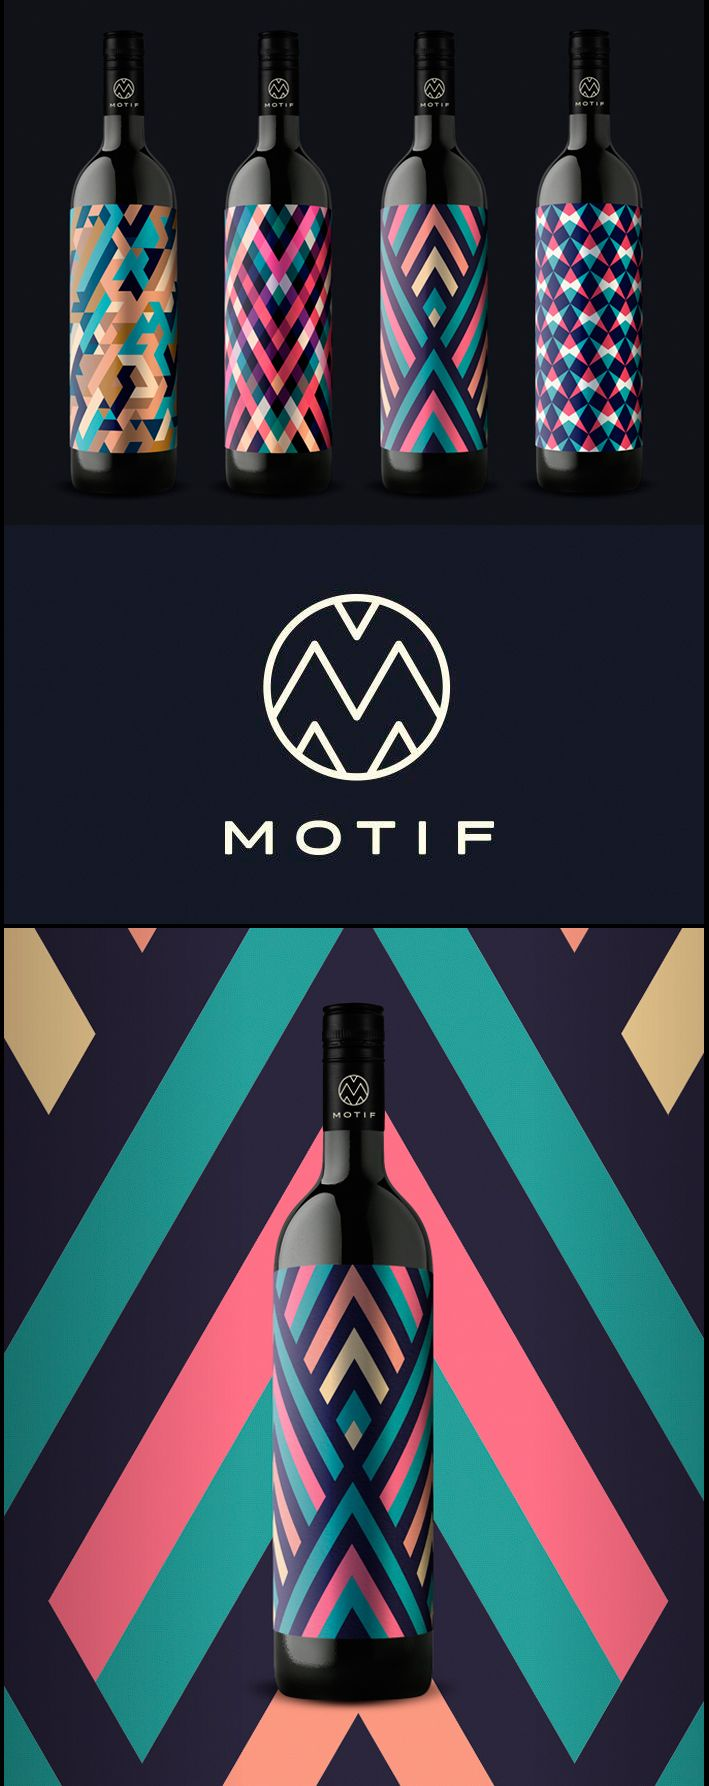 Motif Wine don't include a lot of text on the bottles. Every flavor of wine has it's own different geometric pattern and colour scheme, making this packaging very unique.